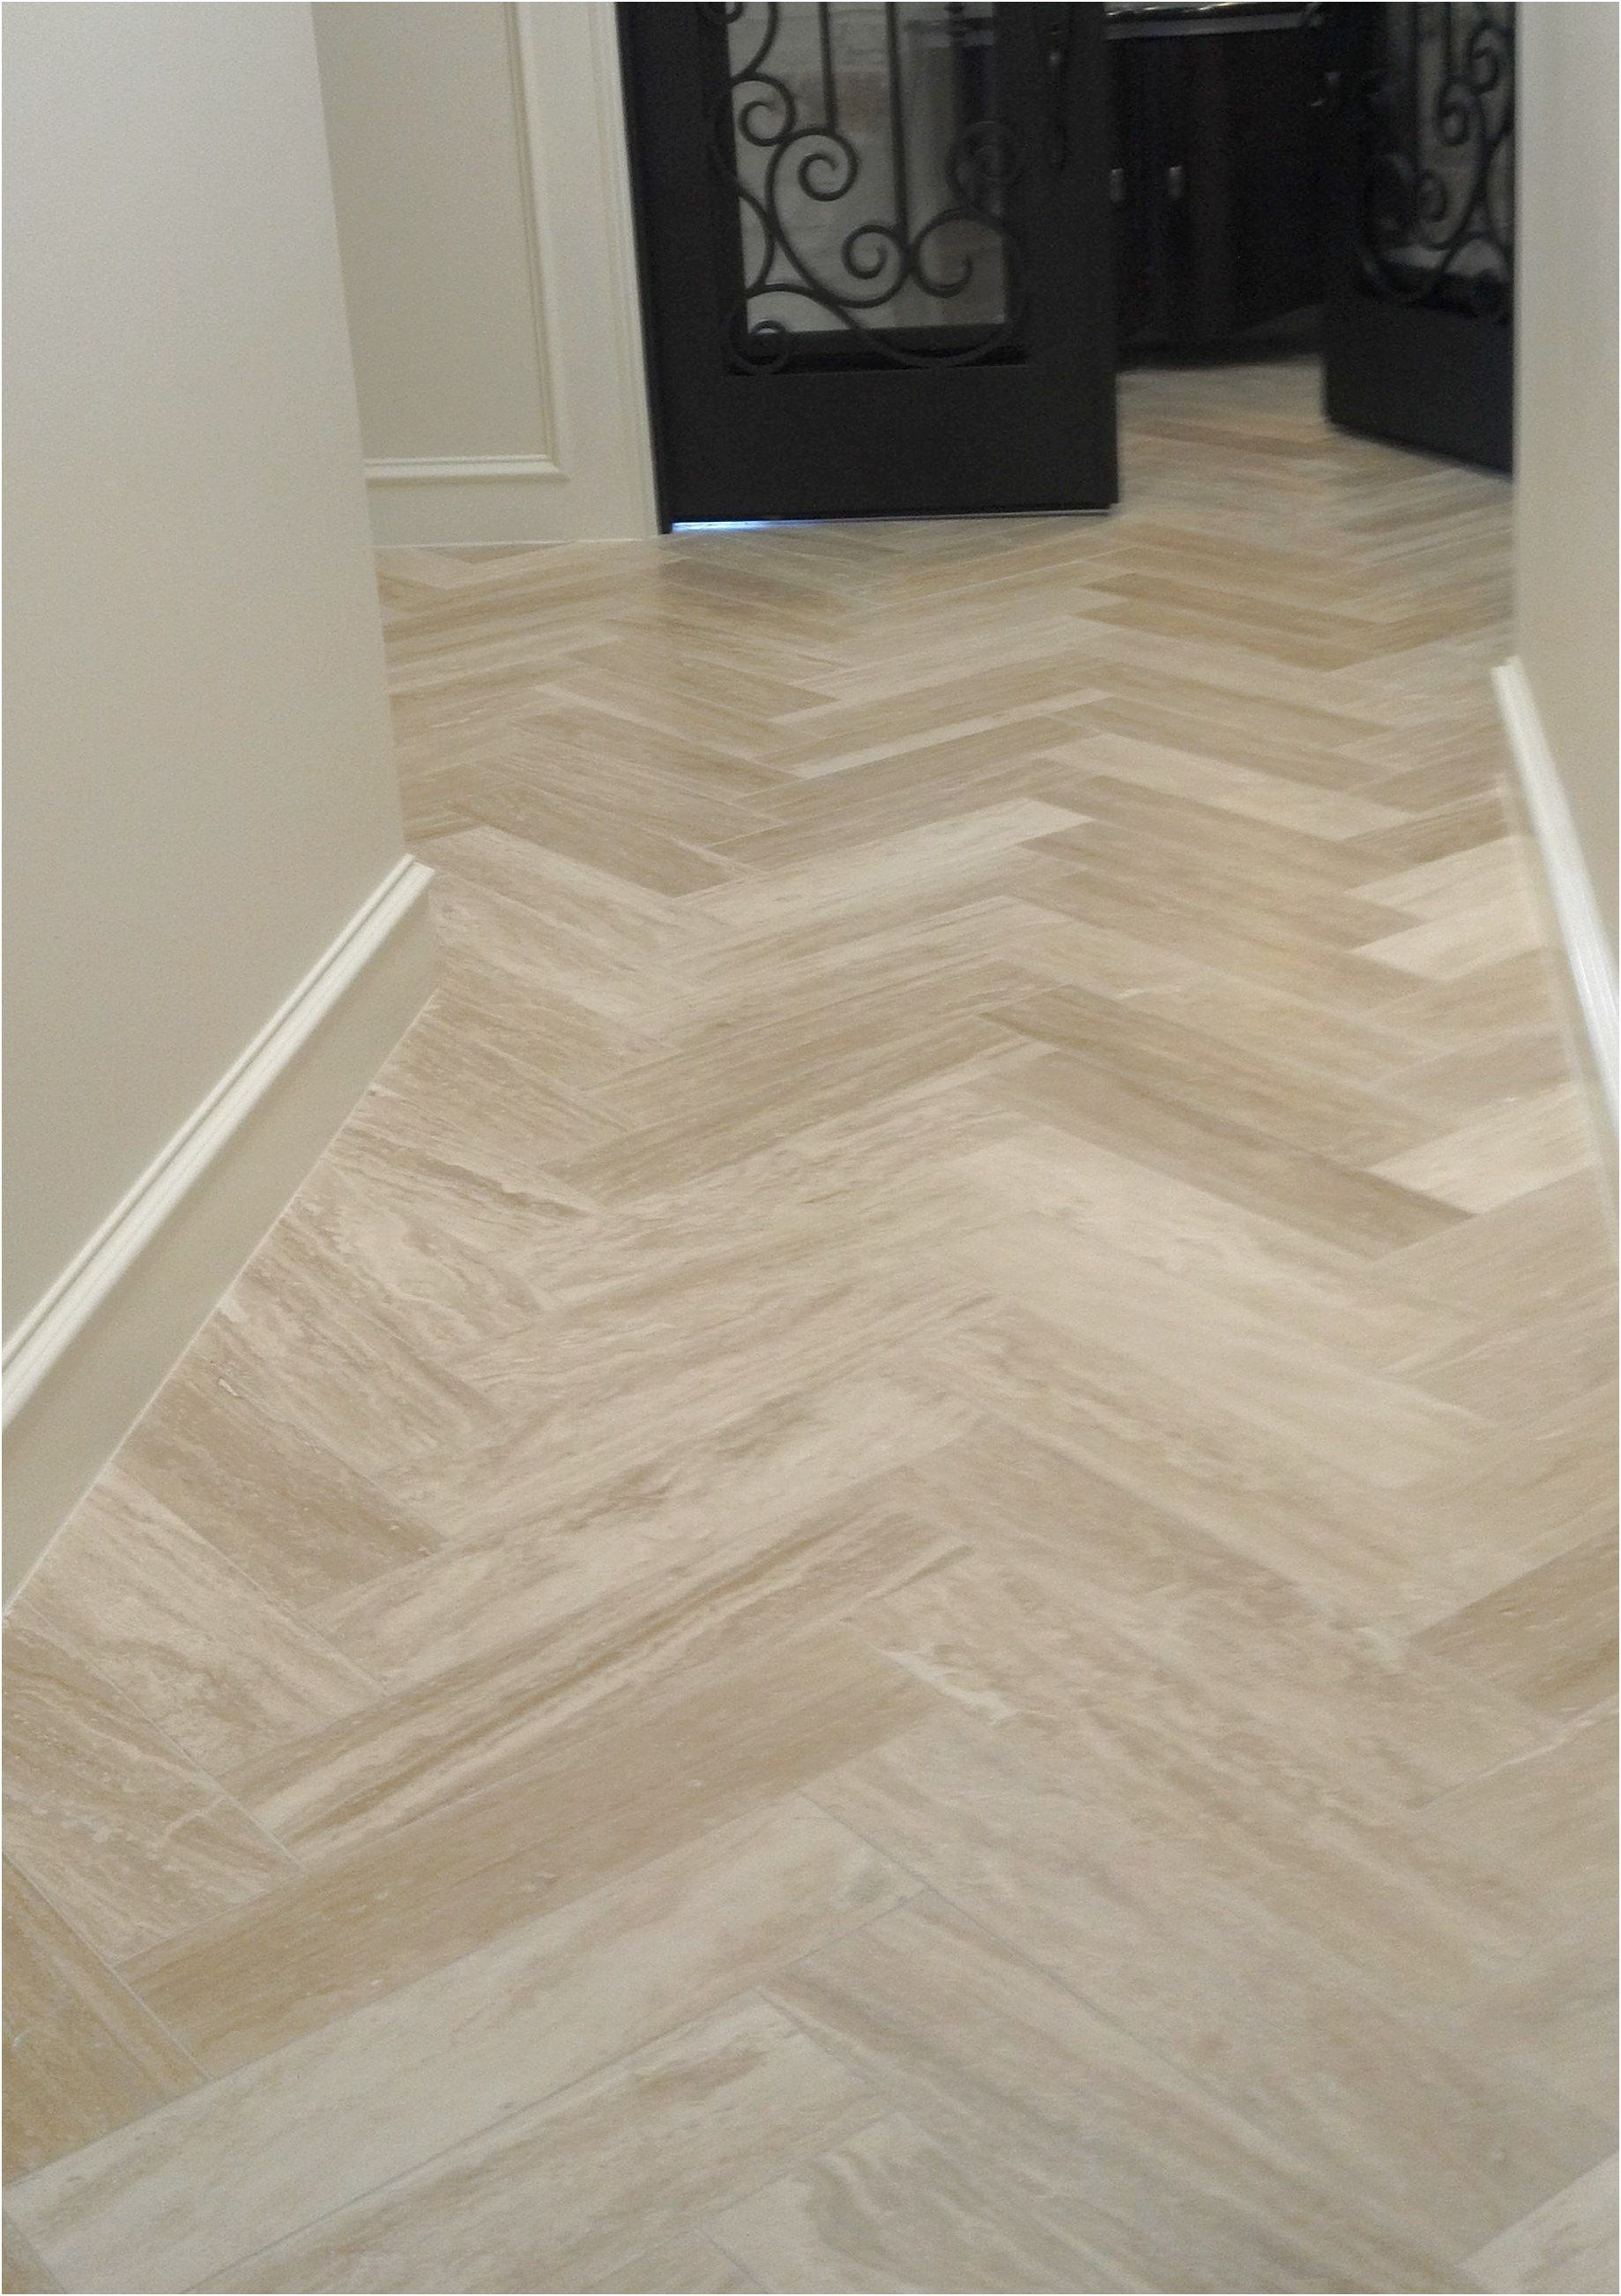 Travertine Tile Planks Emser Tile Ceramicflooring Flooring Click For More Entryway Tile Floor Flooring Entryway Tile